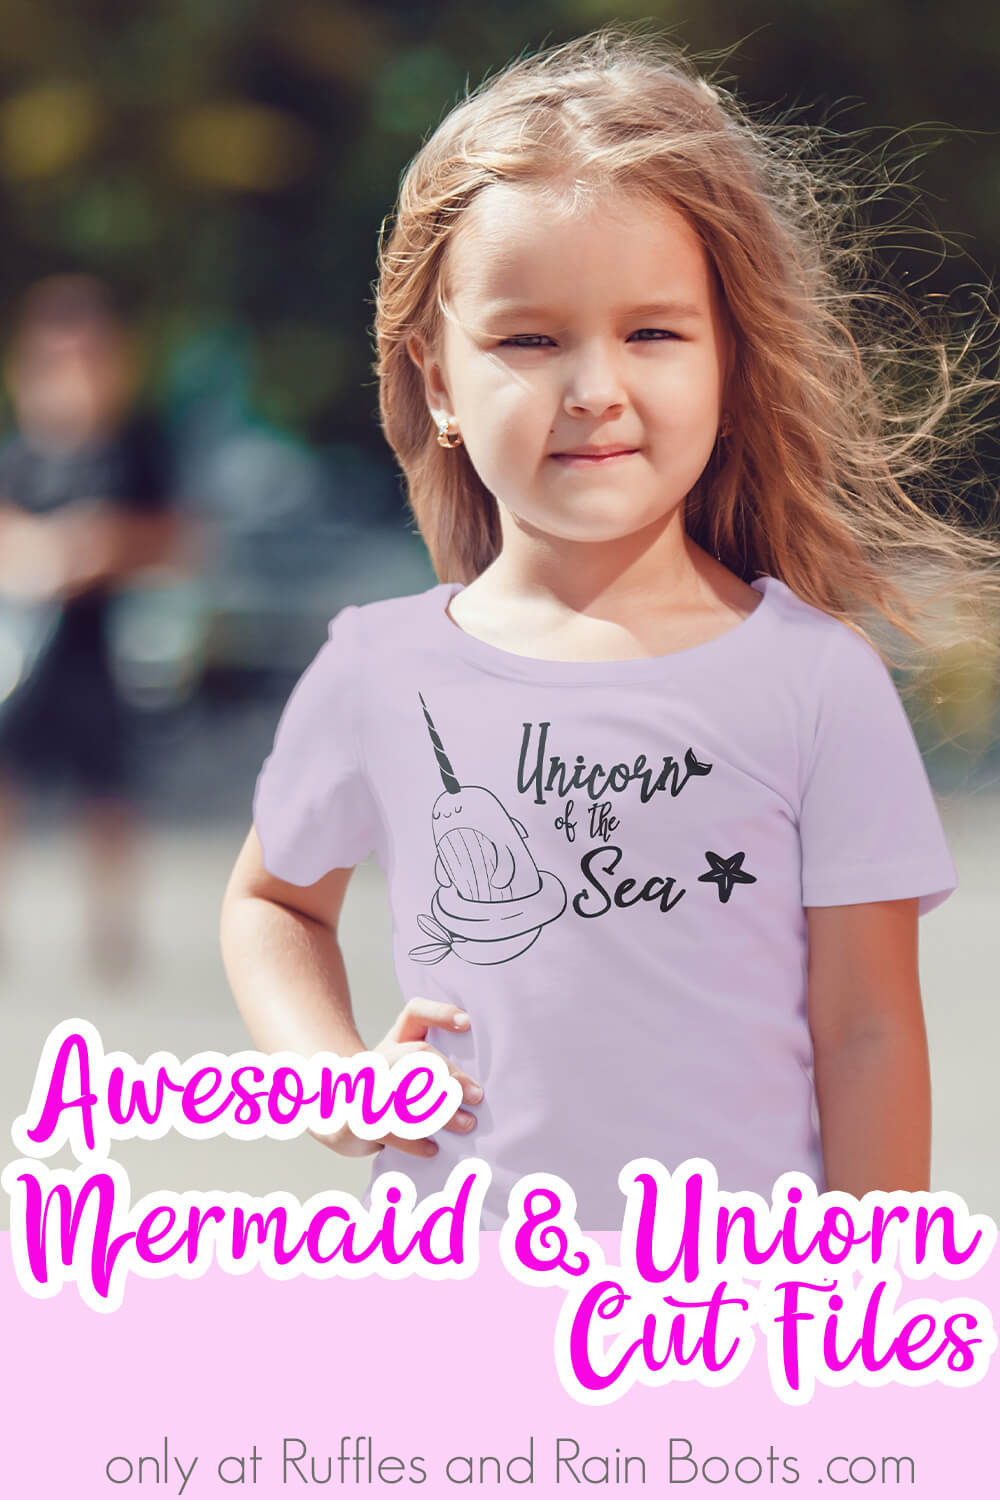 unicorn of the sea nharwal svg on a shirt worn by a little girl in front of a blurred, crowded street with text which reads awesome mermaid & unicorn cut files